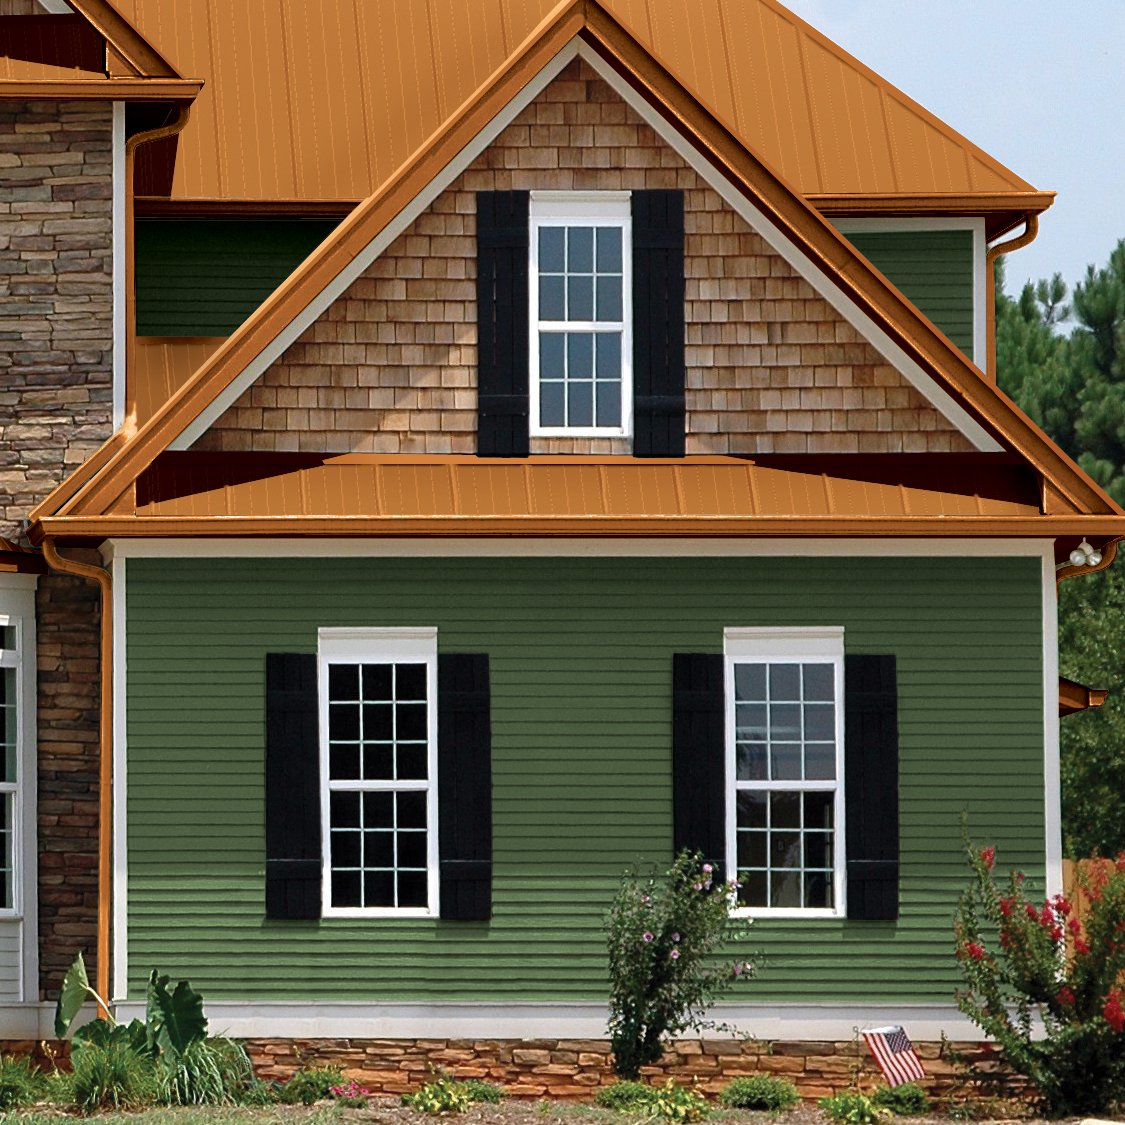 House Siding, Siding Installation And Repair, Indiana